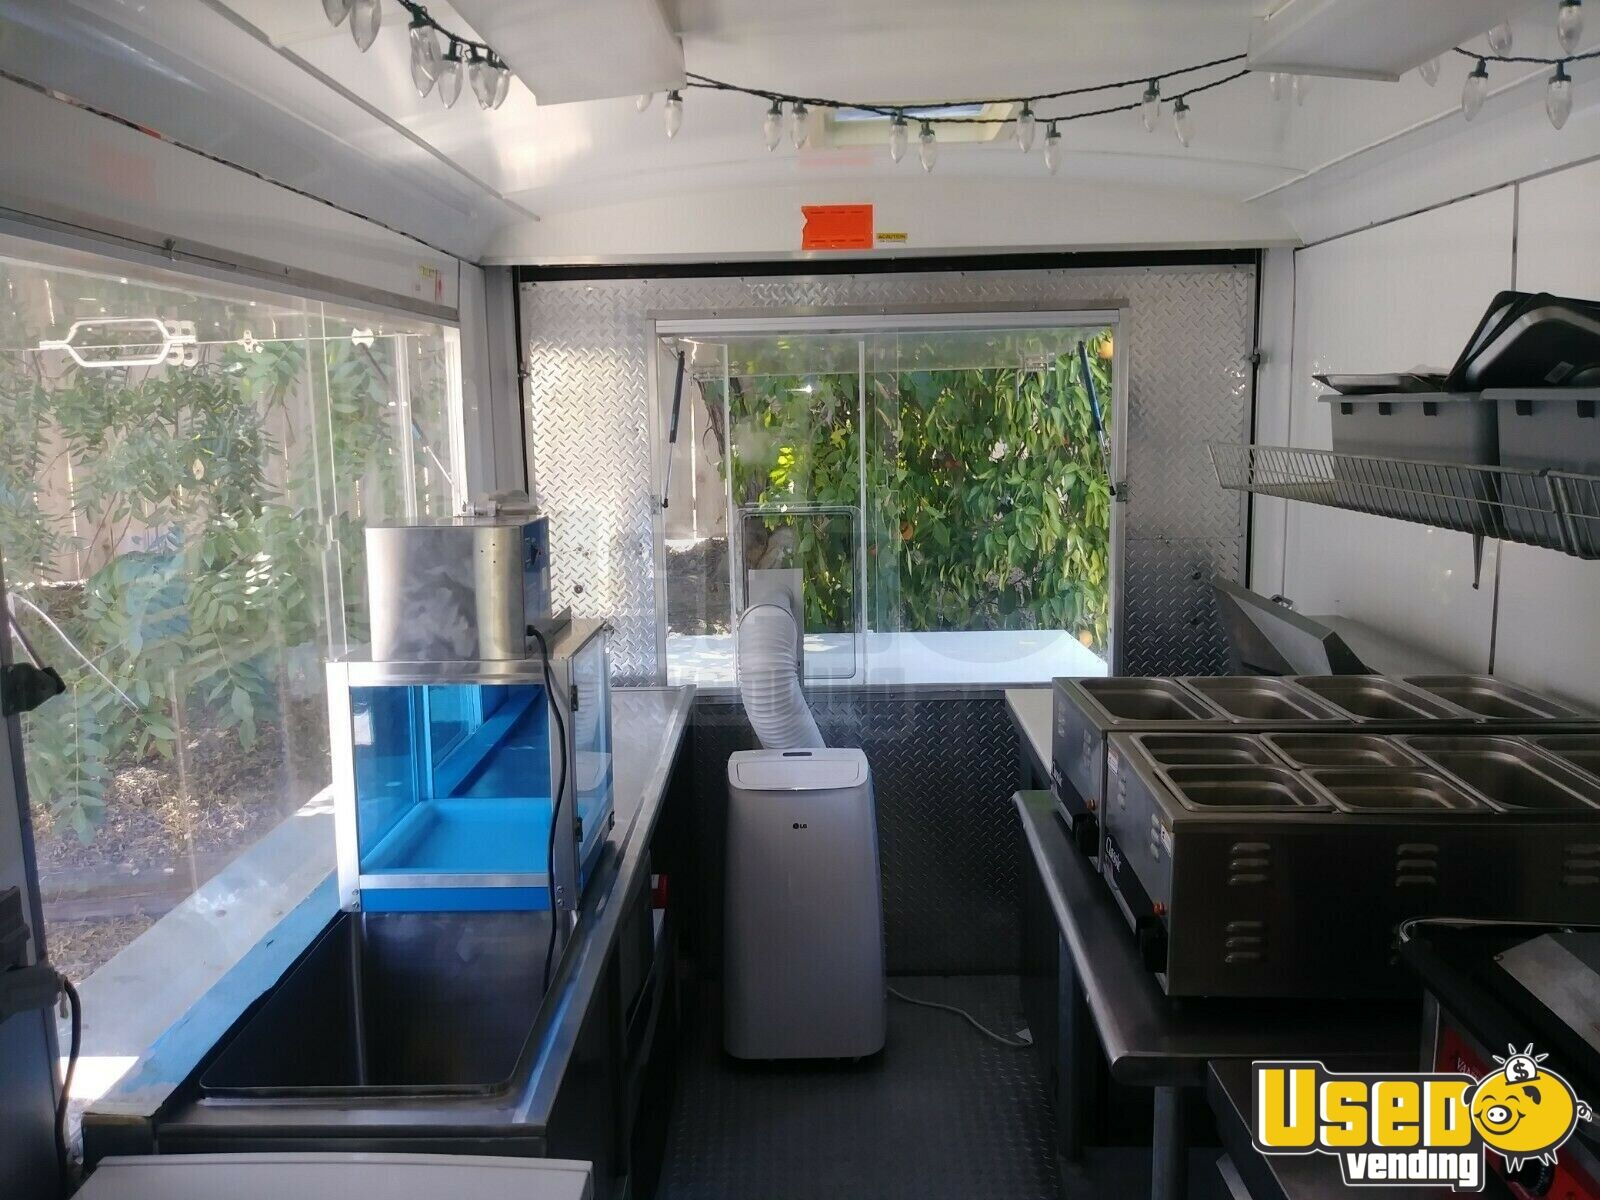 2004 Food Concession Trailer Concession Trailer Microwave California for Sale - 8